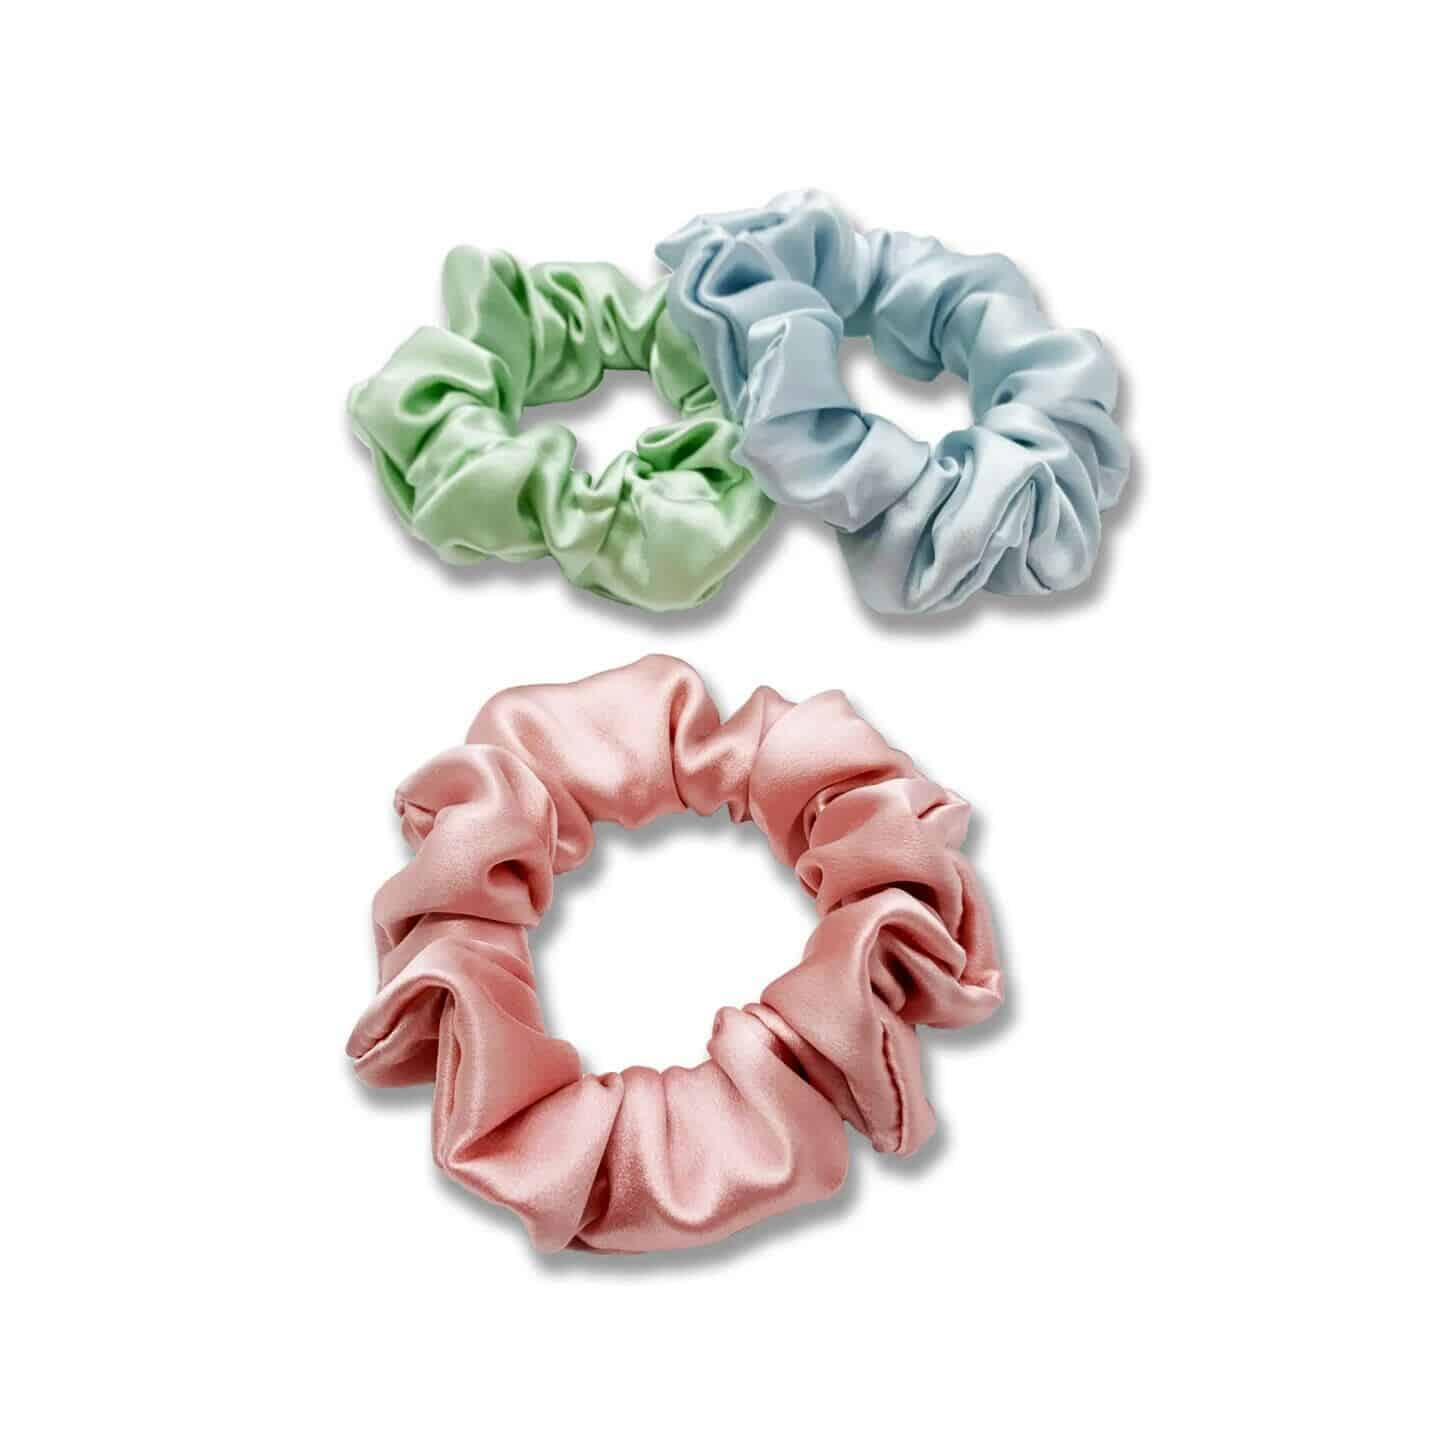 an image of 3 pastel silk scrunchies for natural hair